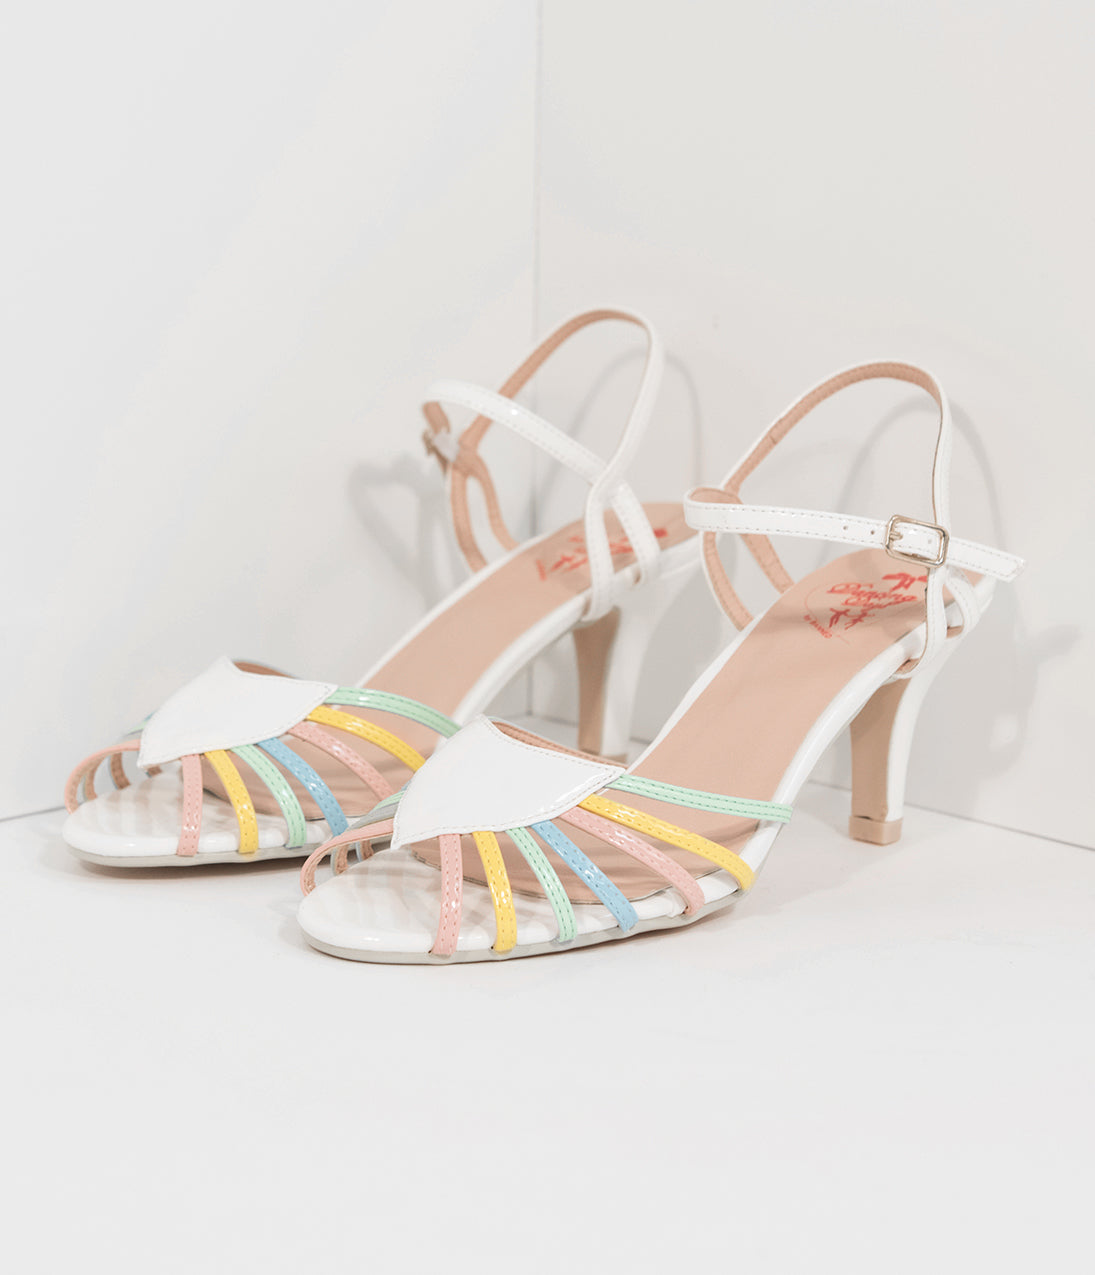 1950s Style Shoes White  Rainbow Strappy Leatherette Peep Toe Heels $66.00 AT vintagedancer.com